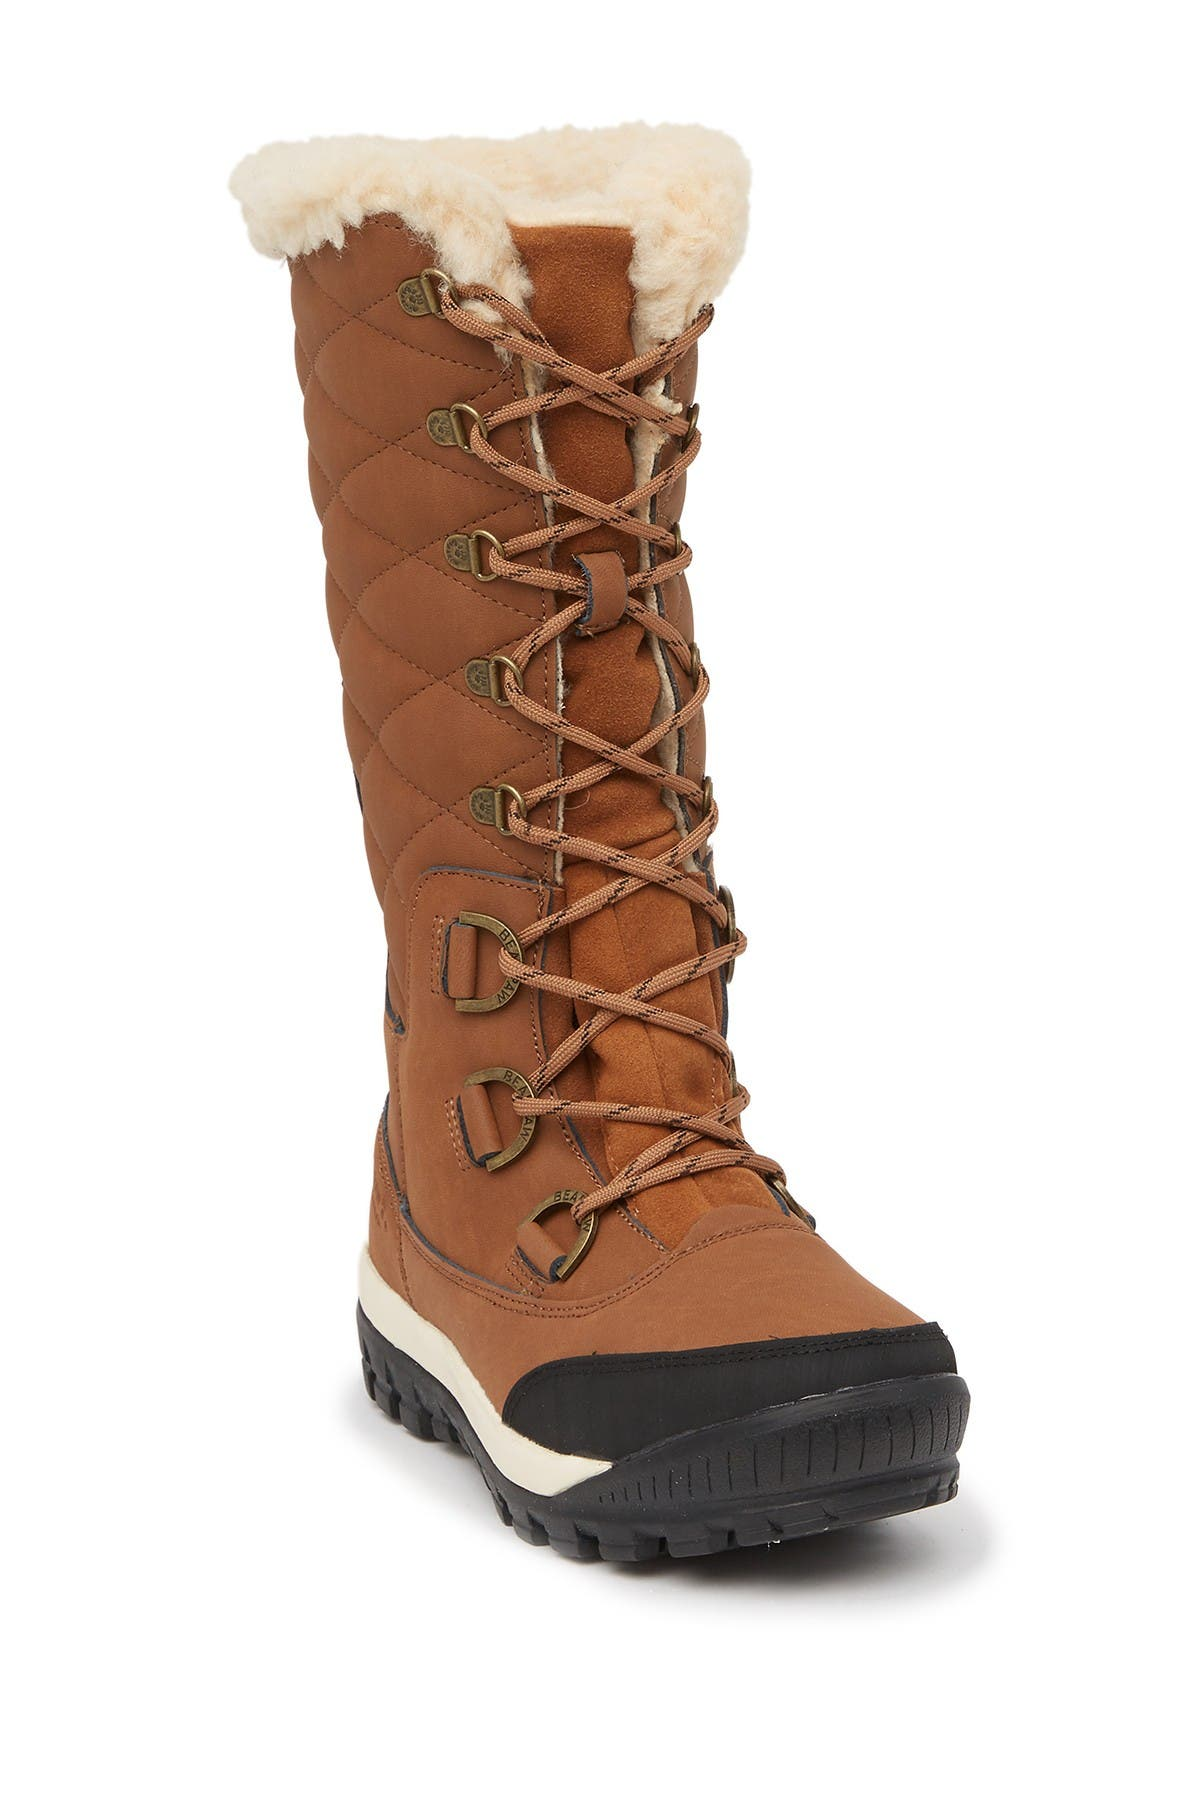 Image of BEARPAW Isabella Genuine Sheepskin Lined Lace-Up Boot